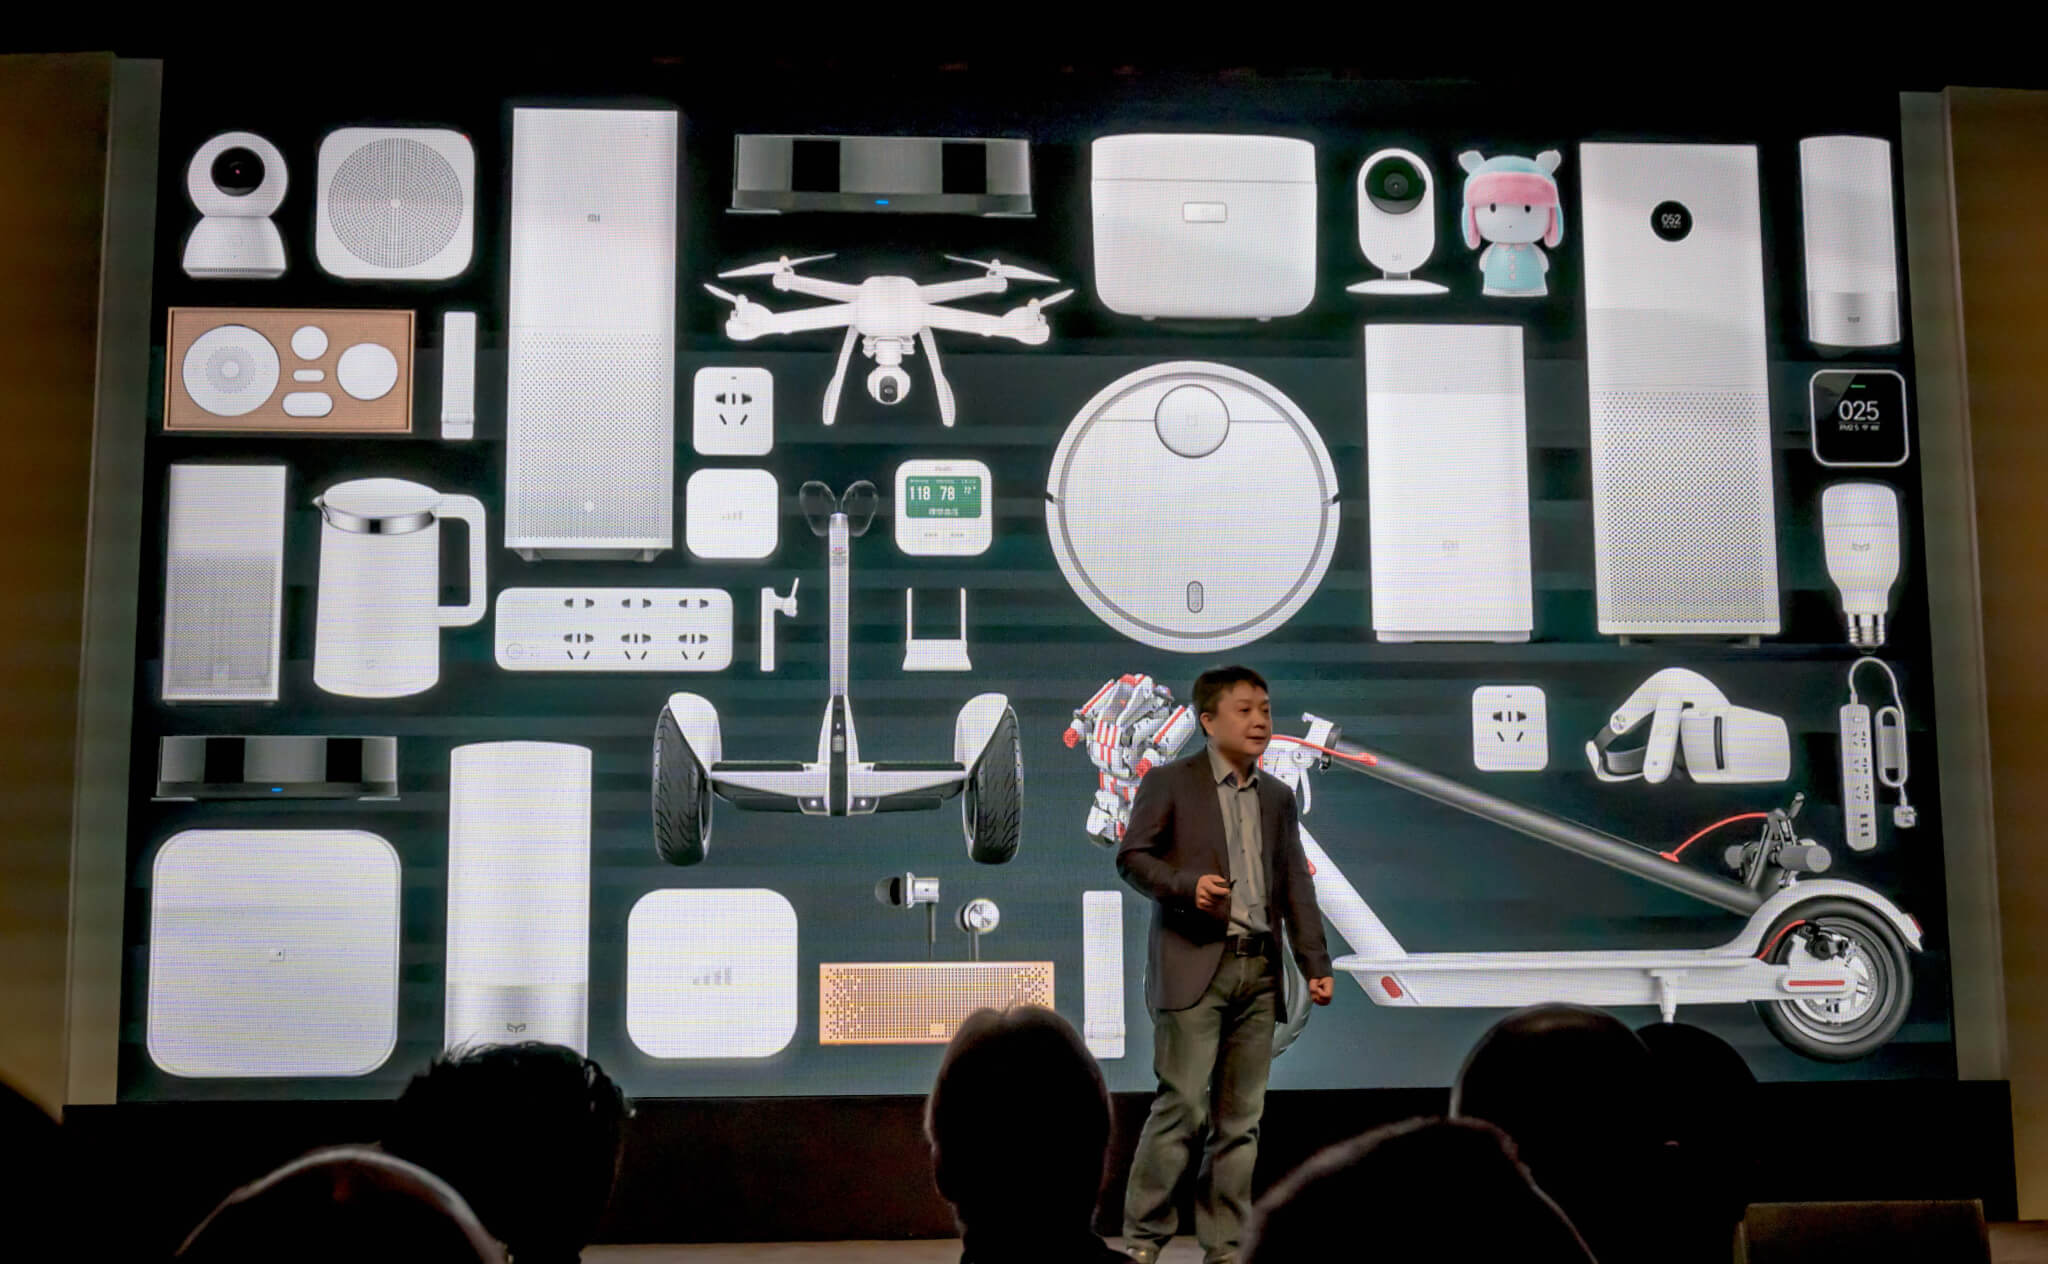 Xiaomi's vice president of global business Xiang Wang on stage at CES 2017.